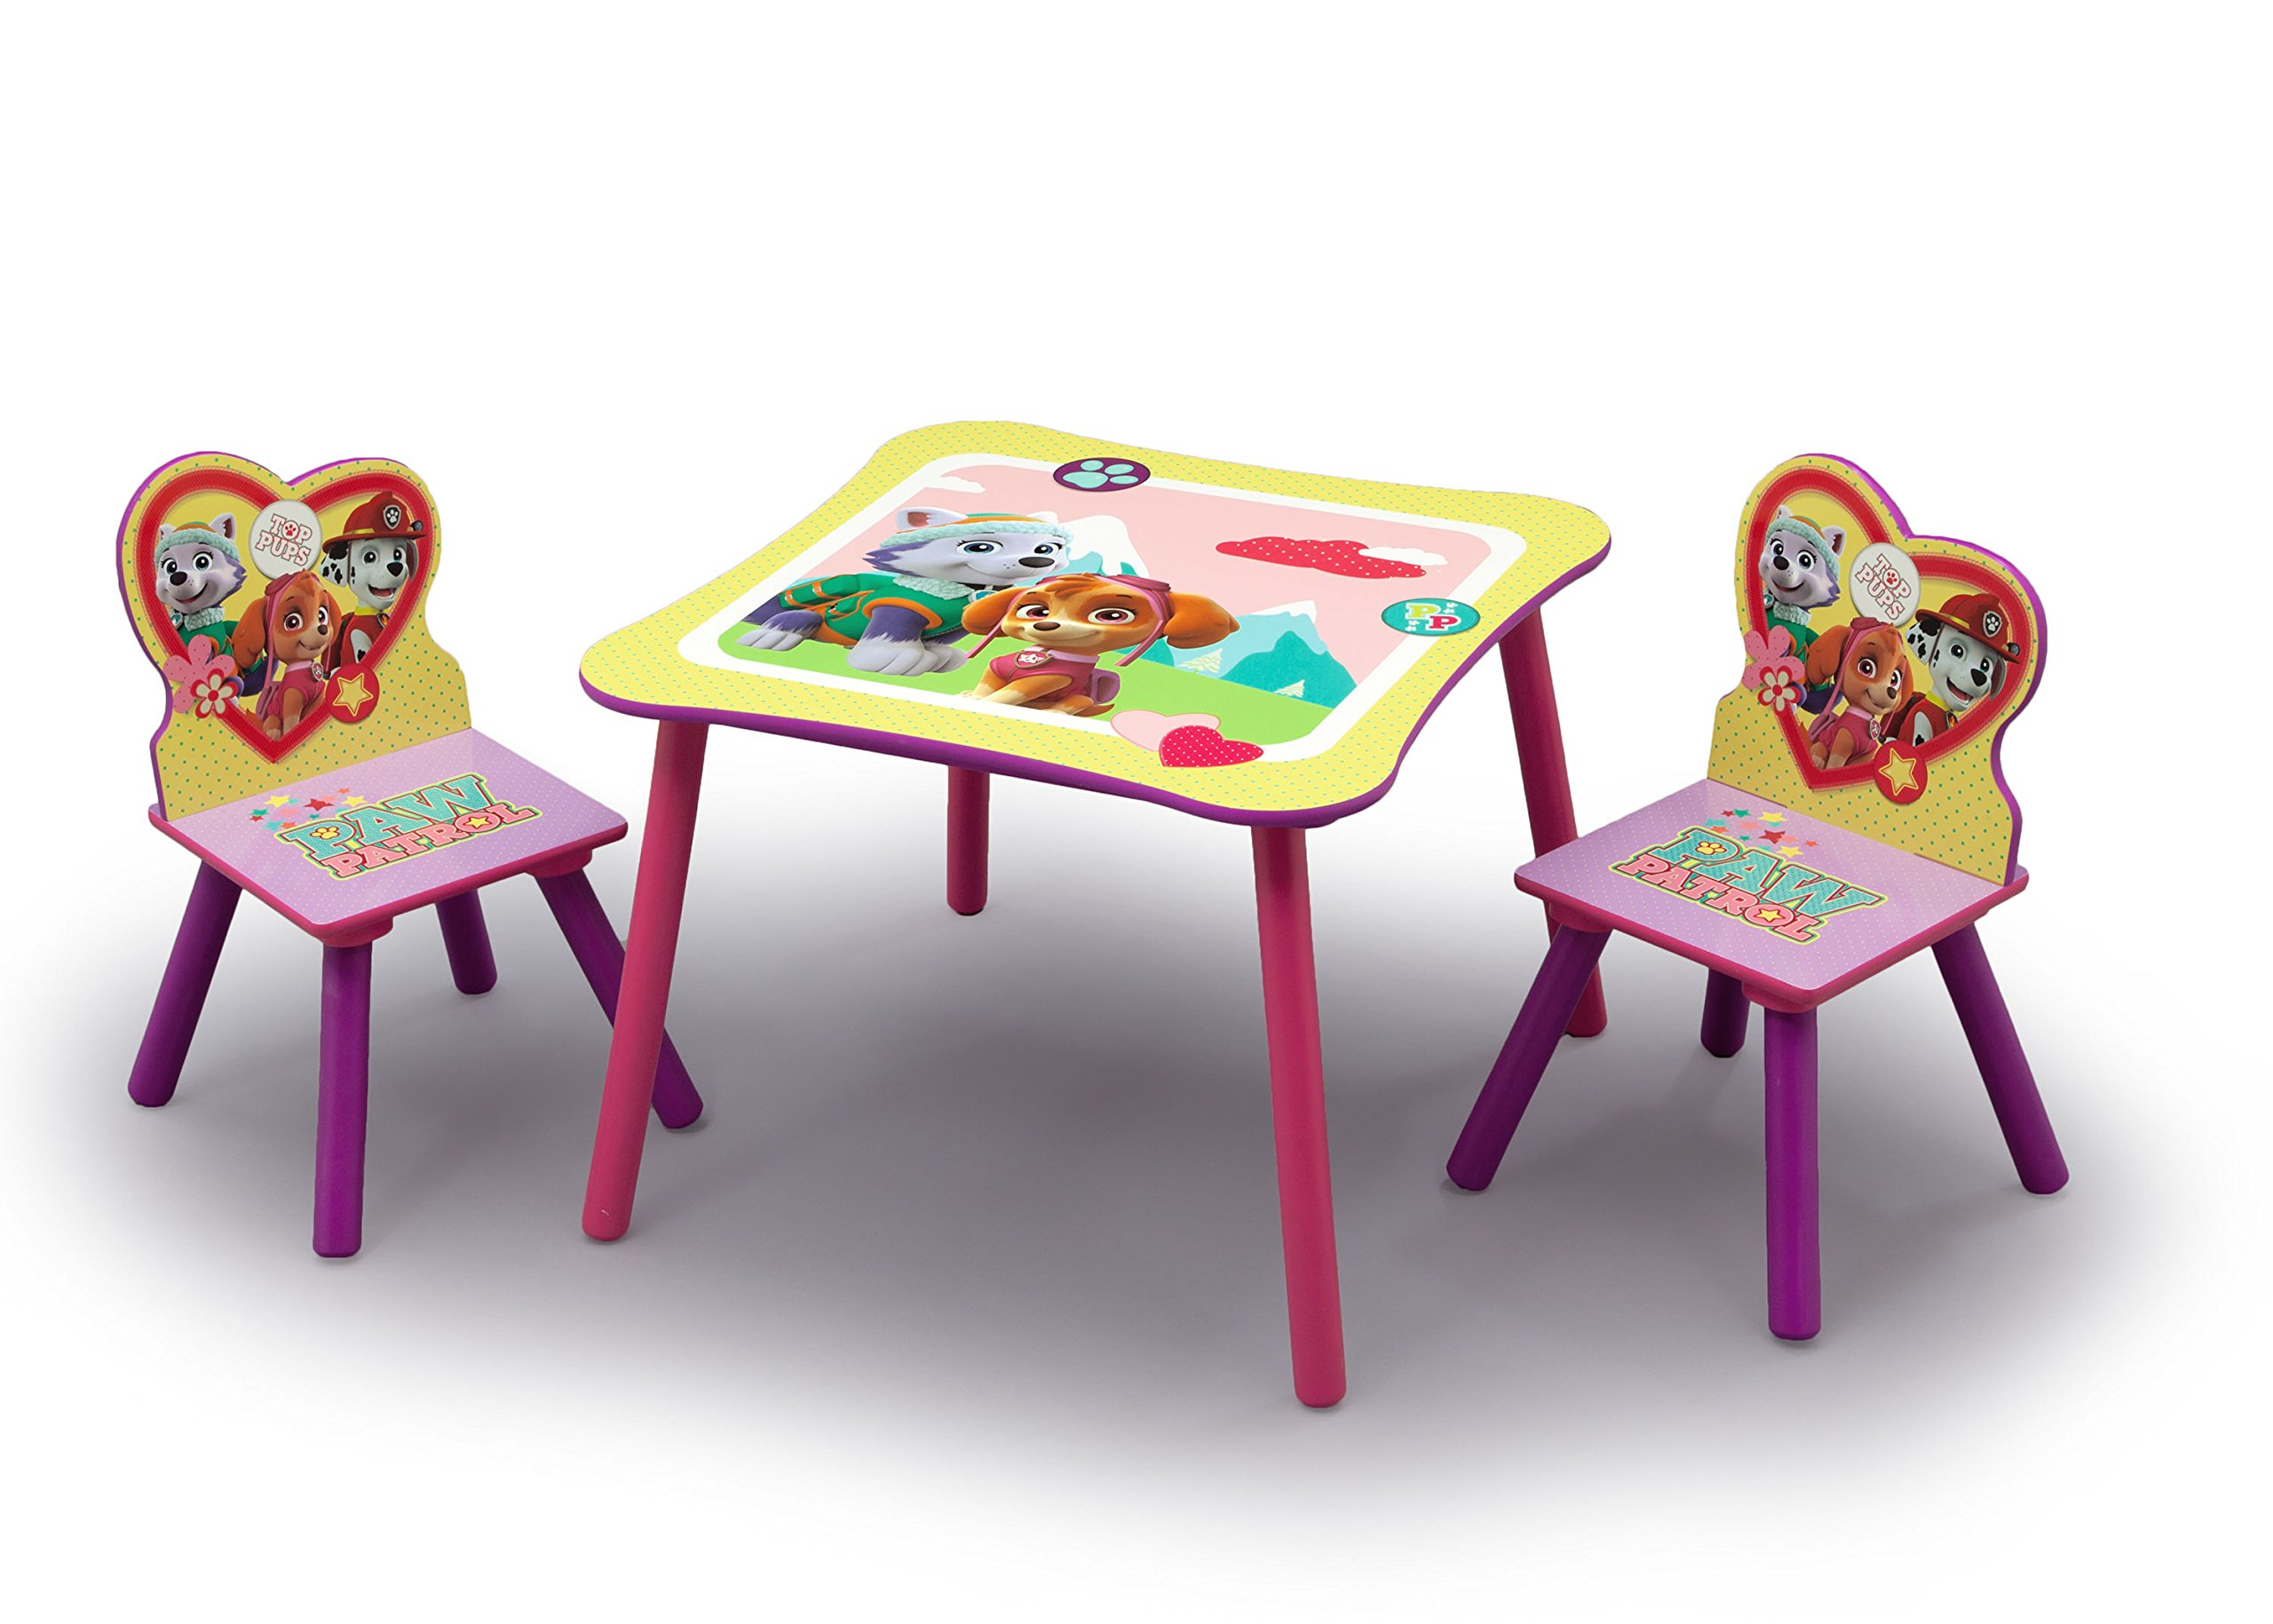 Nick Jr. PAW Patrol - Skye and Everest - Kids Table and Chairs Set by Delta Children by Delta Children